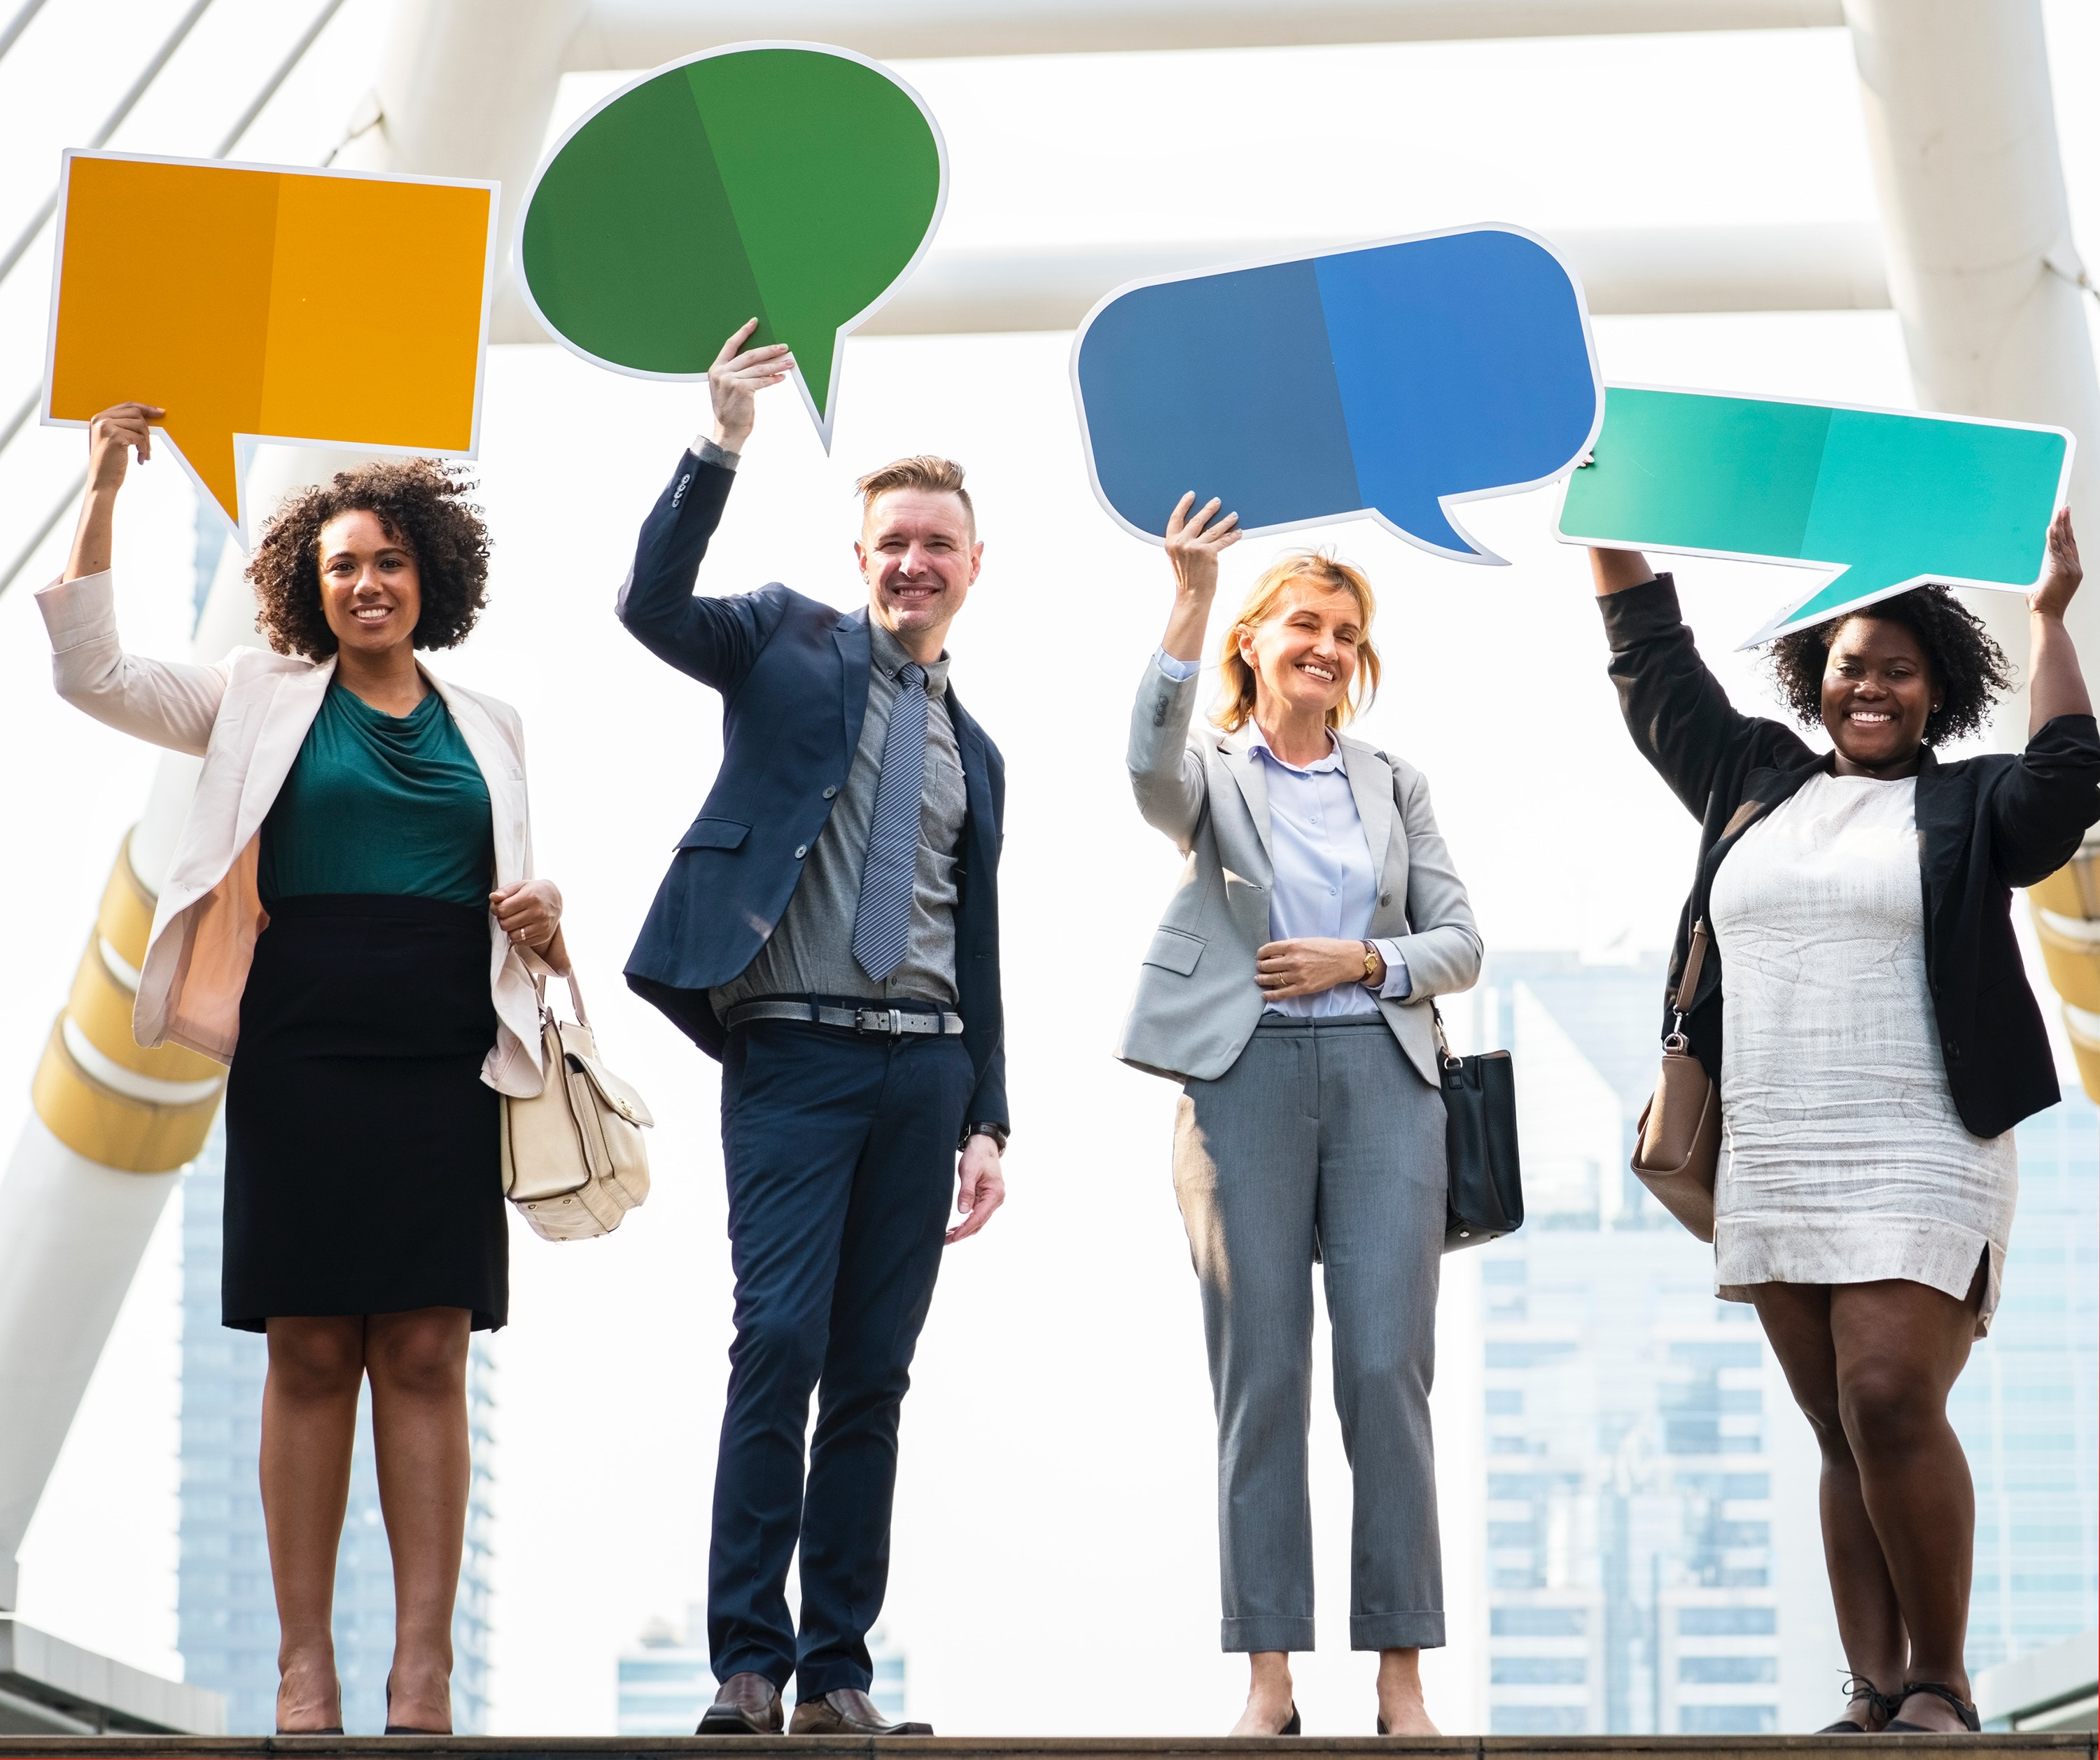 10 Things to Keep in Mind About Intercultural Communication as an Expat